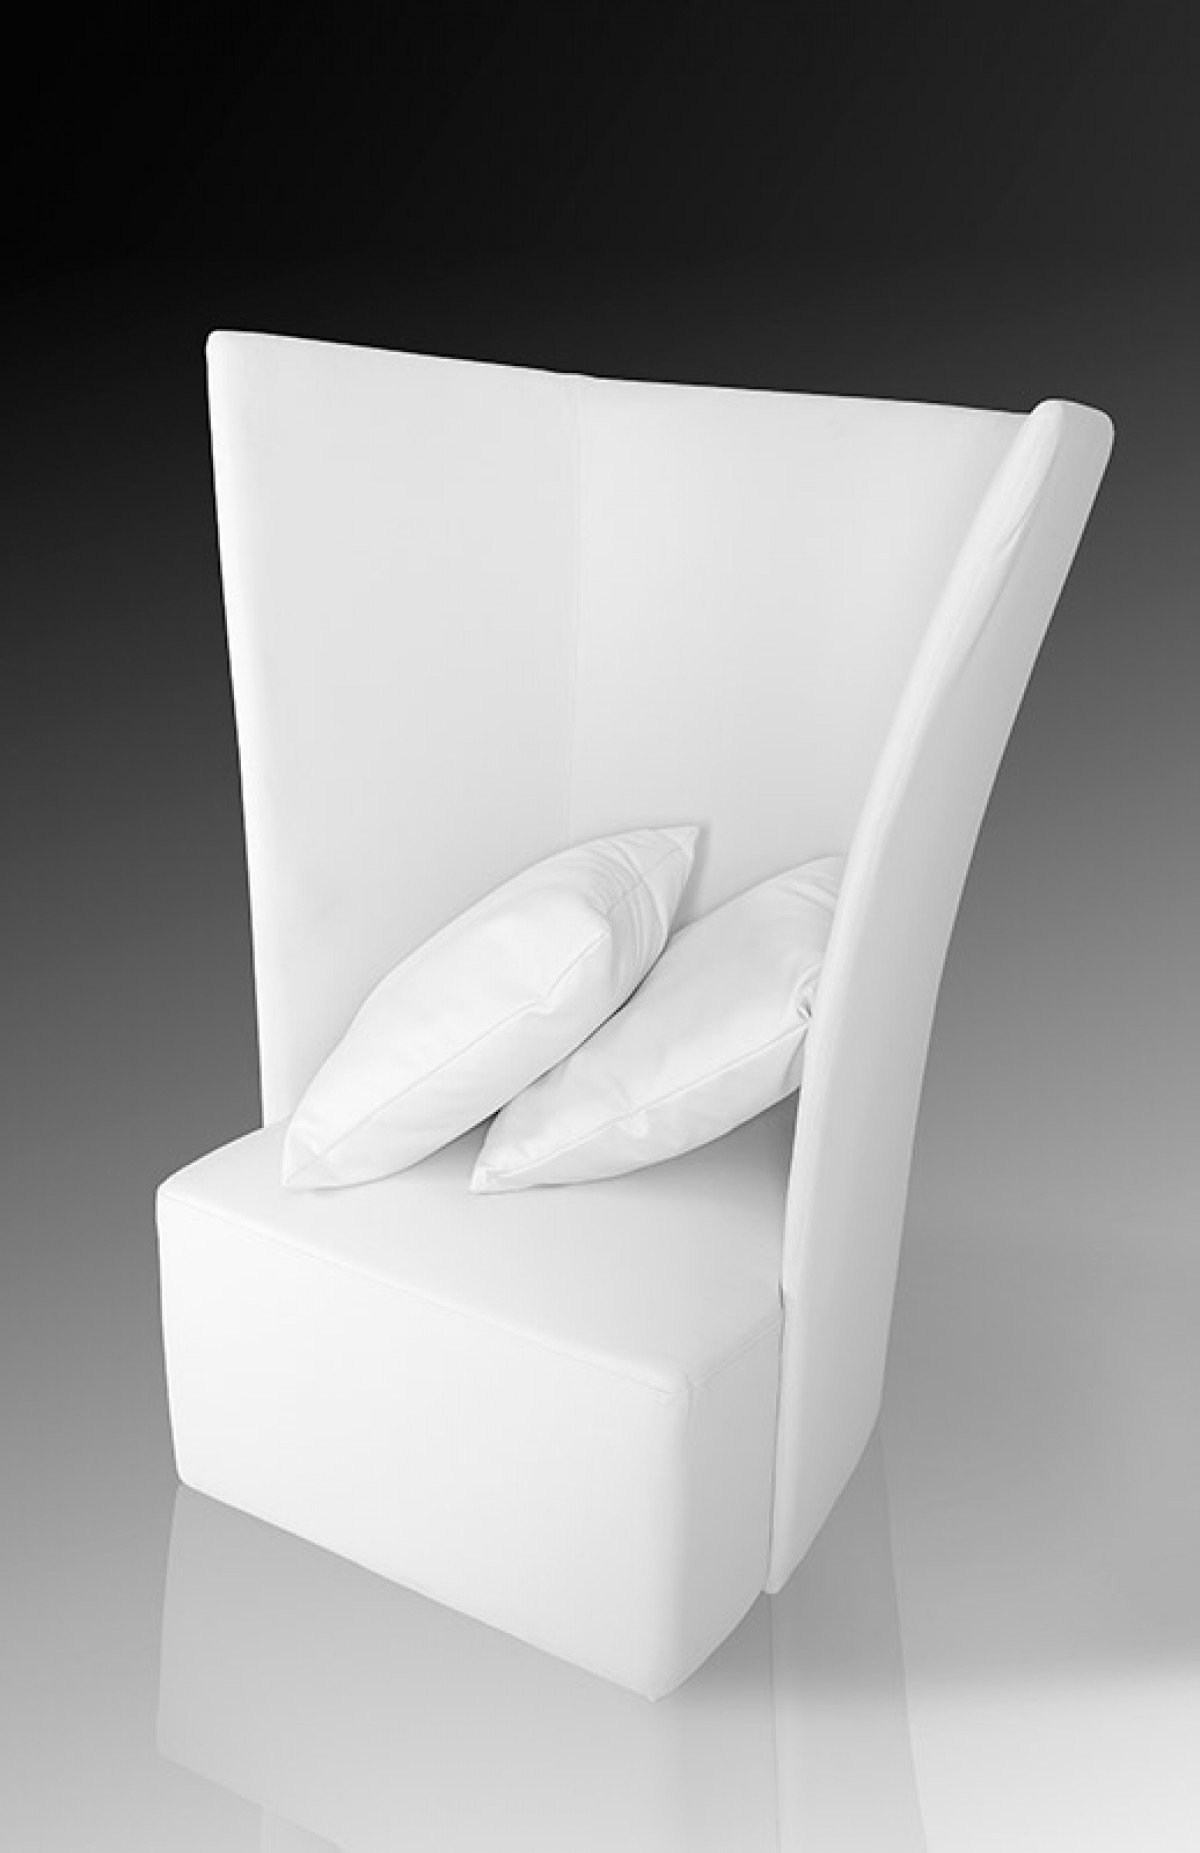 Lounge Chaises And Daybeds Stylish Accessories Modern High Back White Leather Leisure Chair